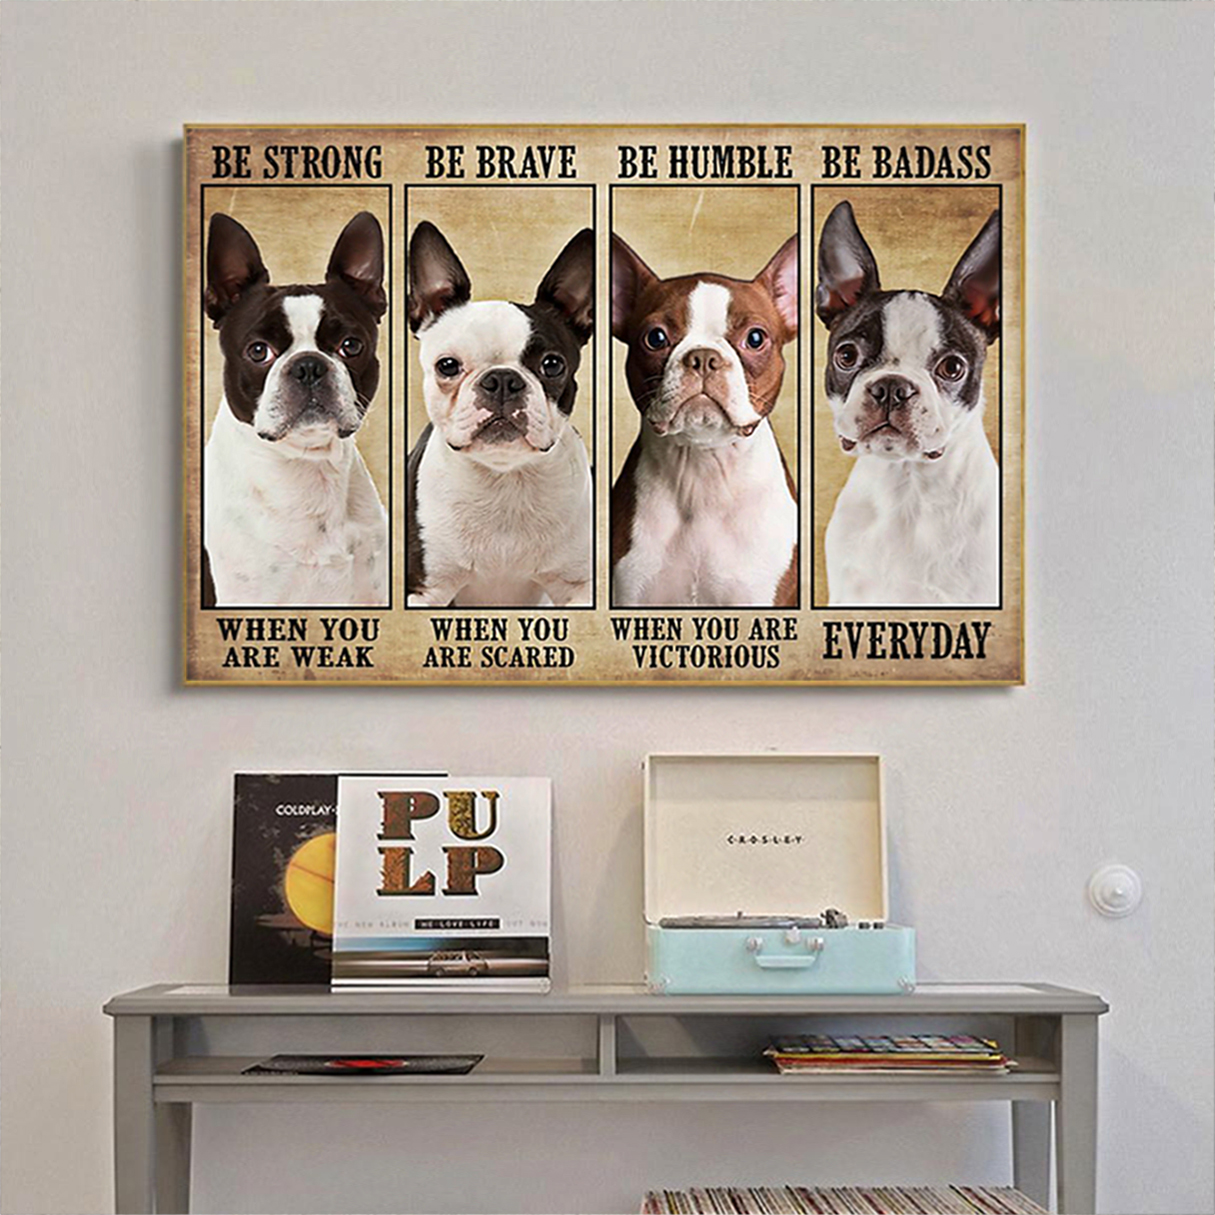 Boston terrier be strong be brave be humble be badass poster A2